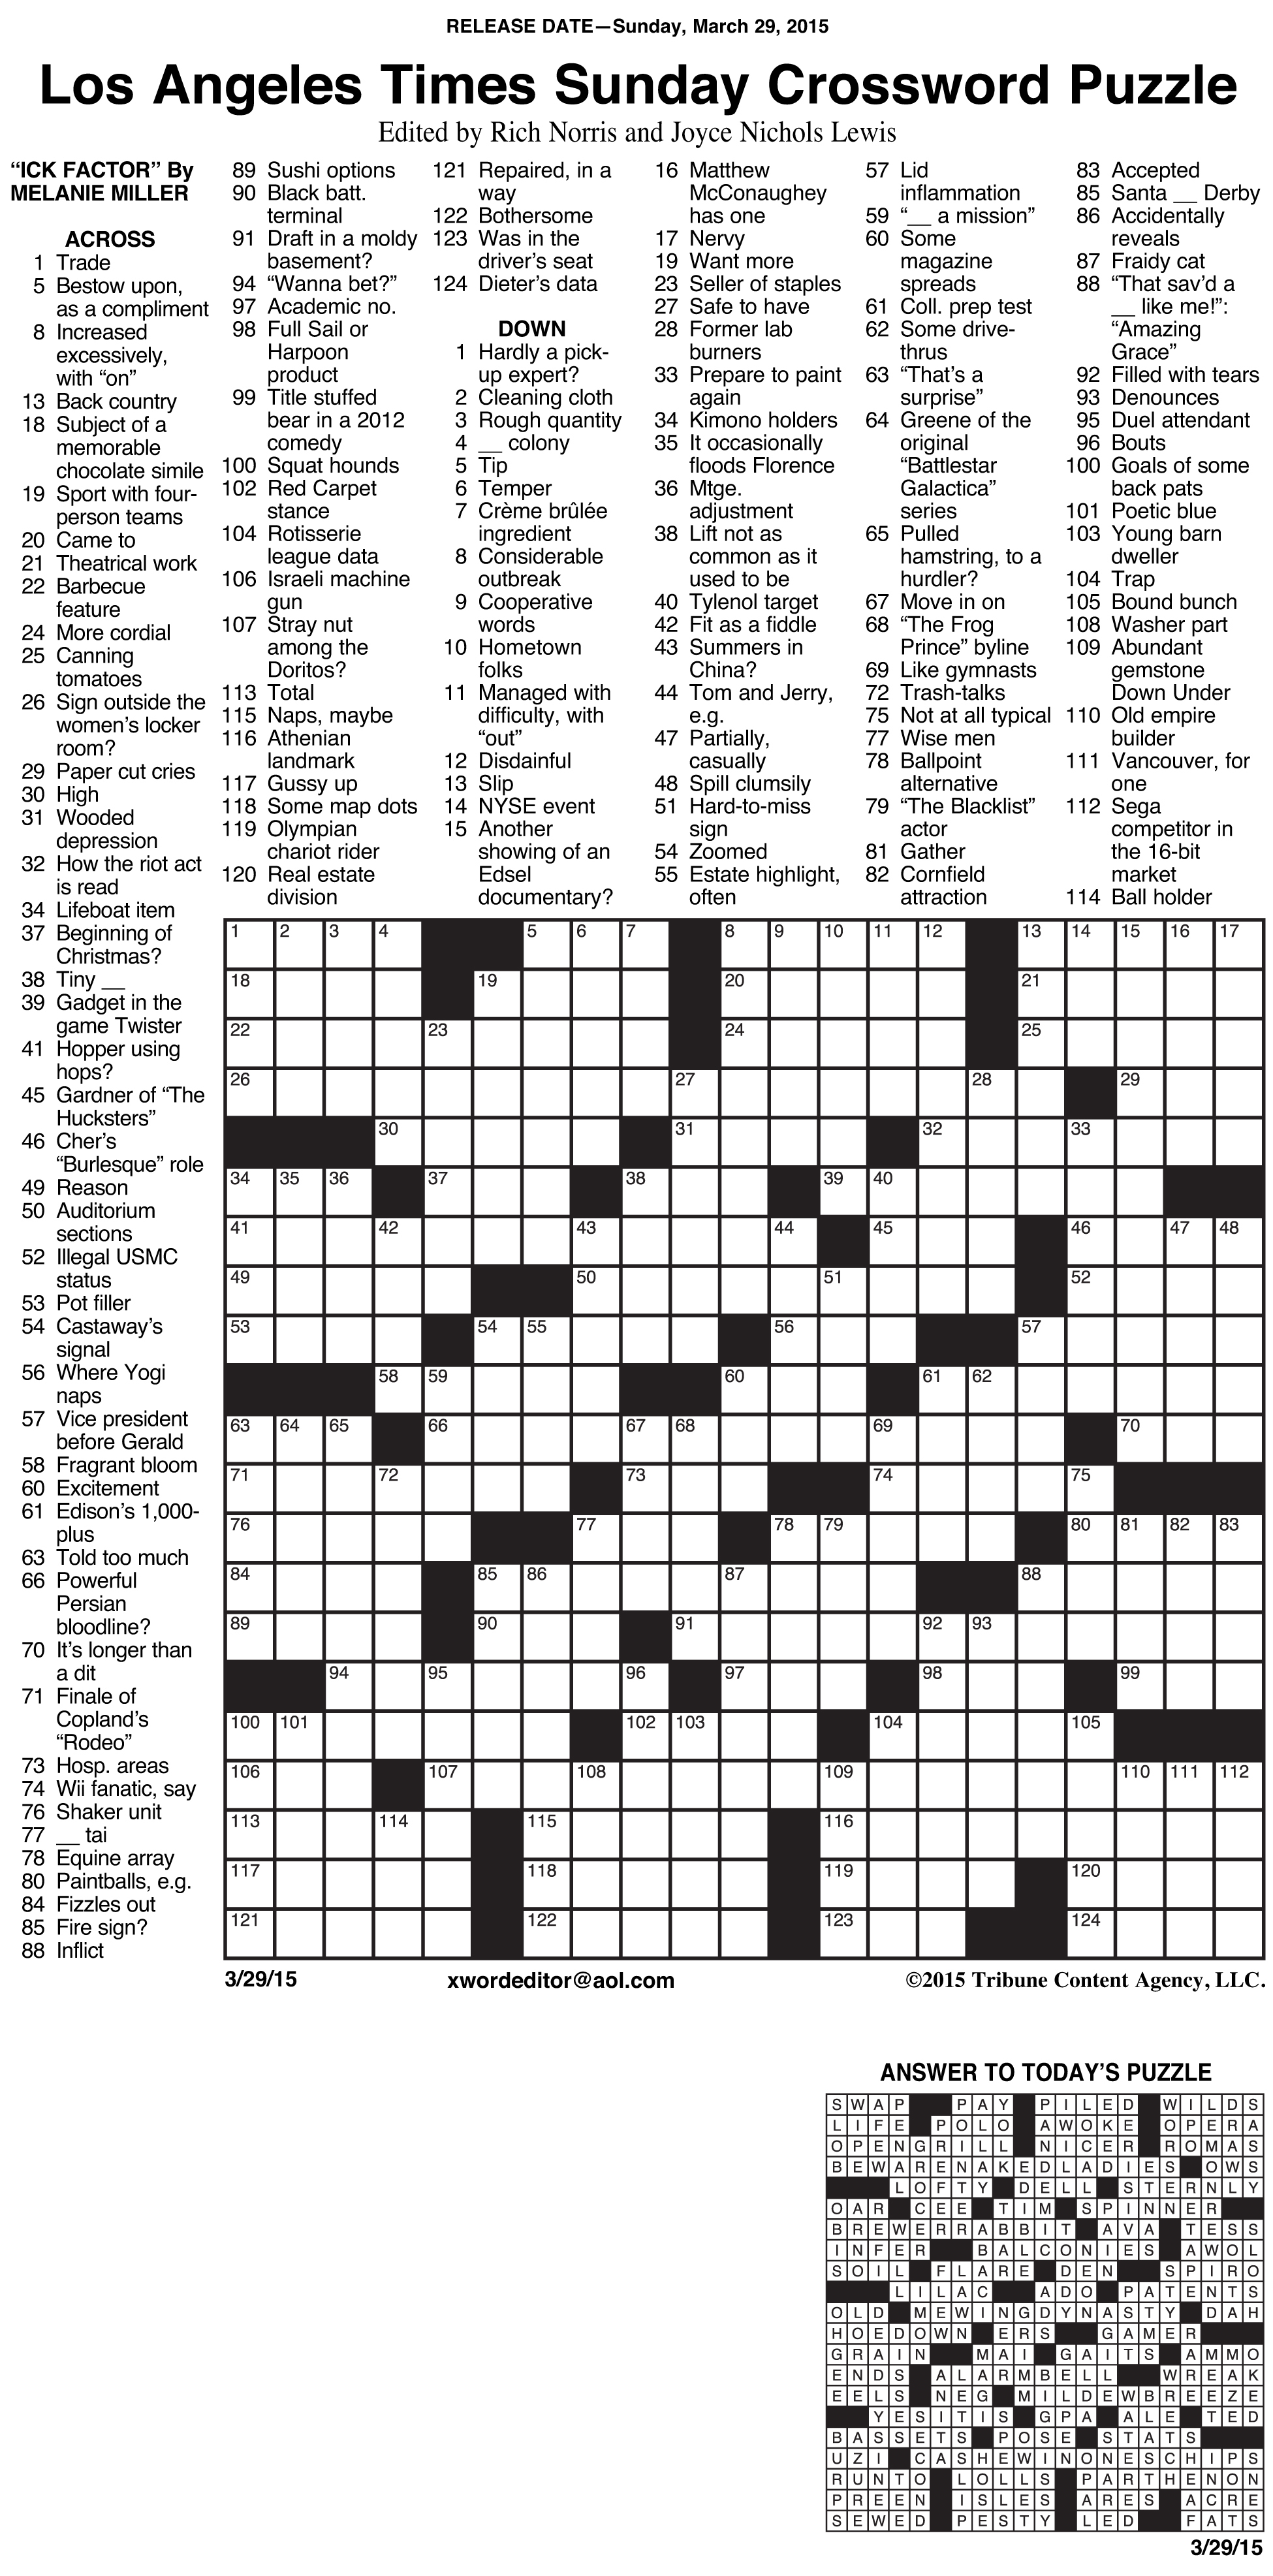 Sample Of Los Angeles Times Sunday Crossword Puzzle | Tribune - La Times Printable Crossword 2015